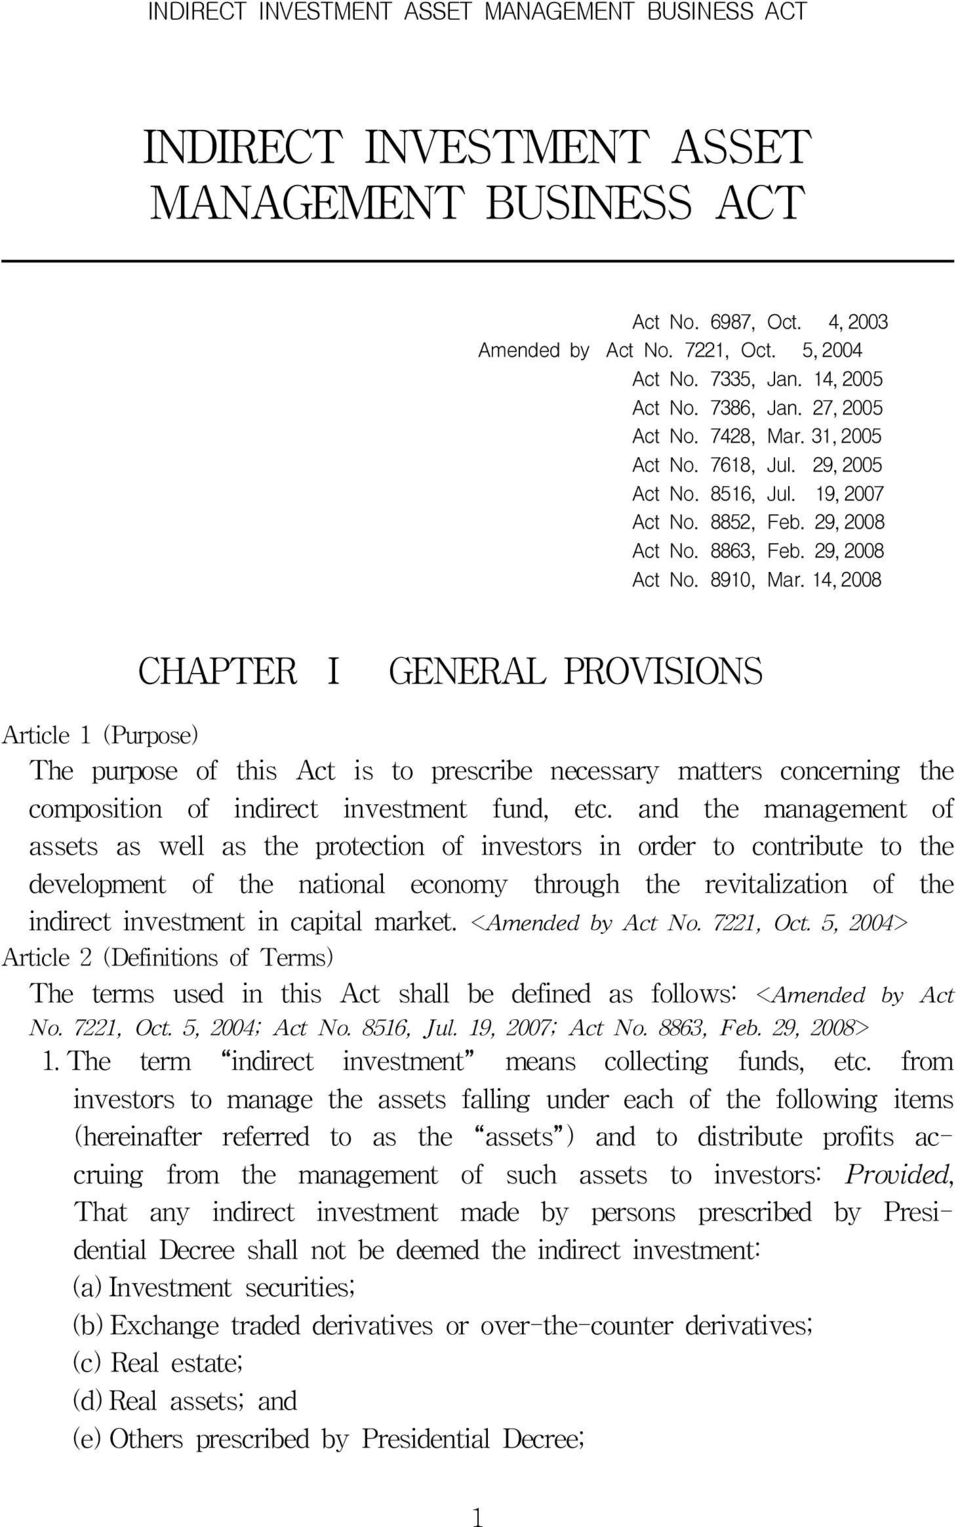 14, 2008 CHAPTER Ⅰ GENERAL PROVISIONS Article 1 (Purpose) The purpose of this Act is to prescribe necessary matters concerning the composition of indirect investment fund, etc.